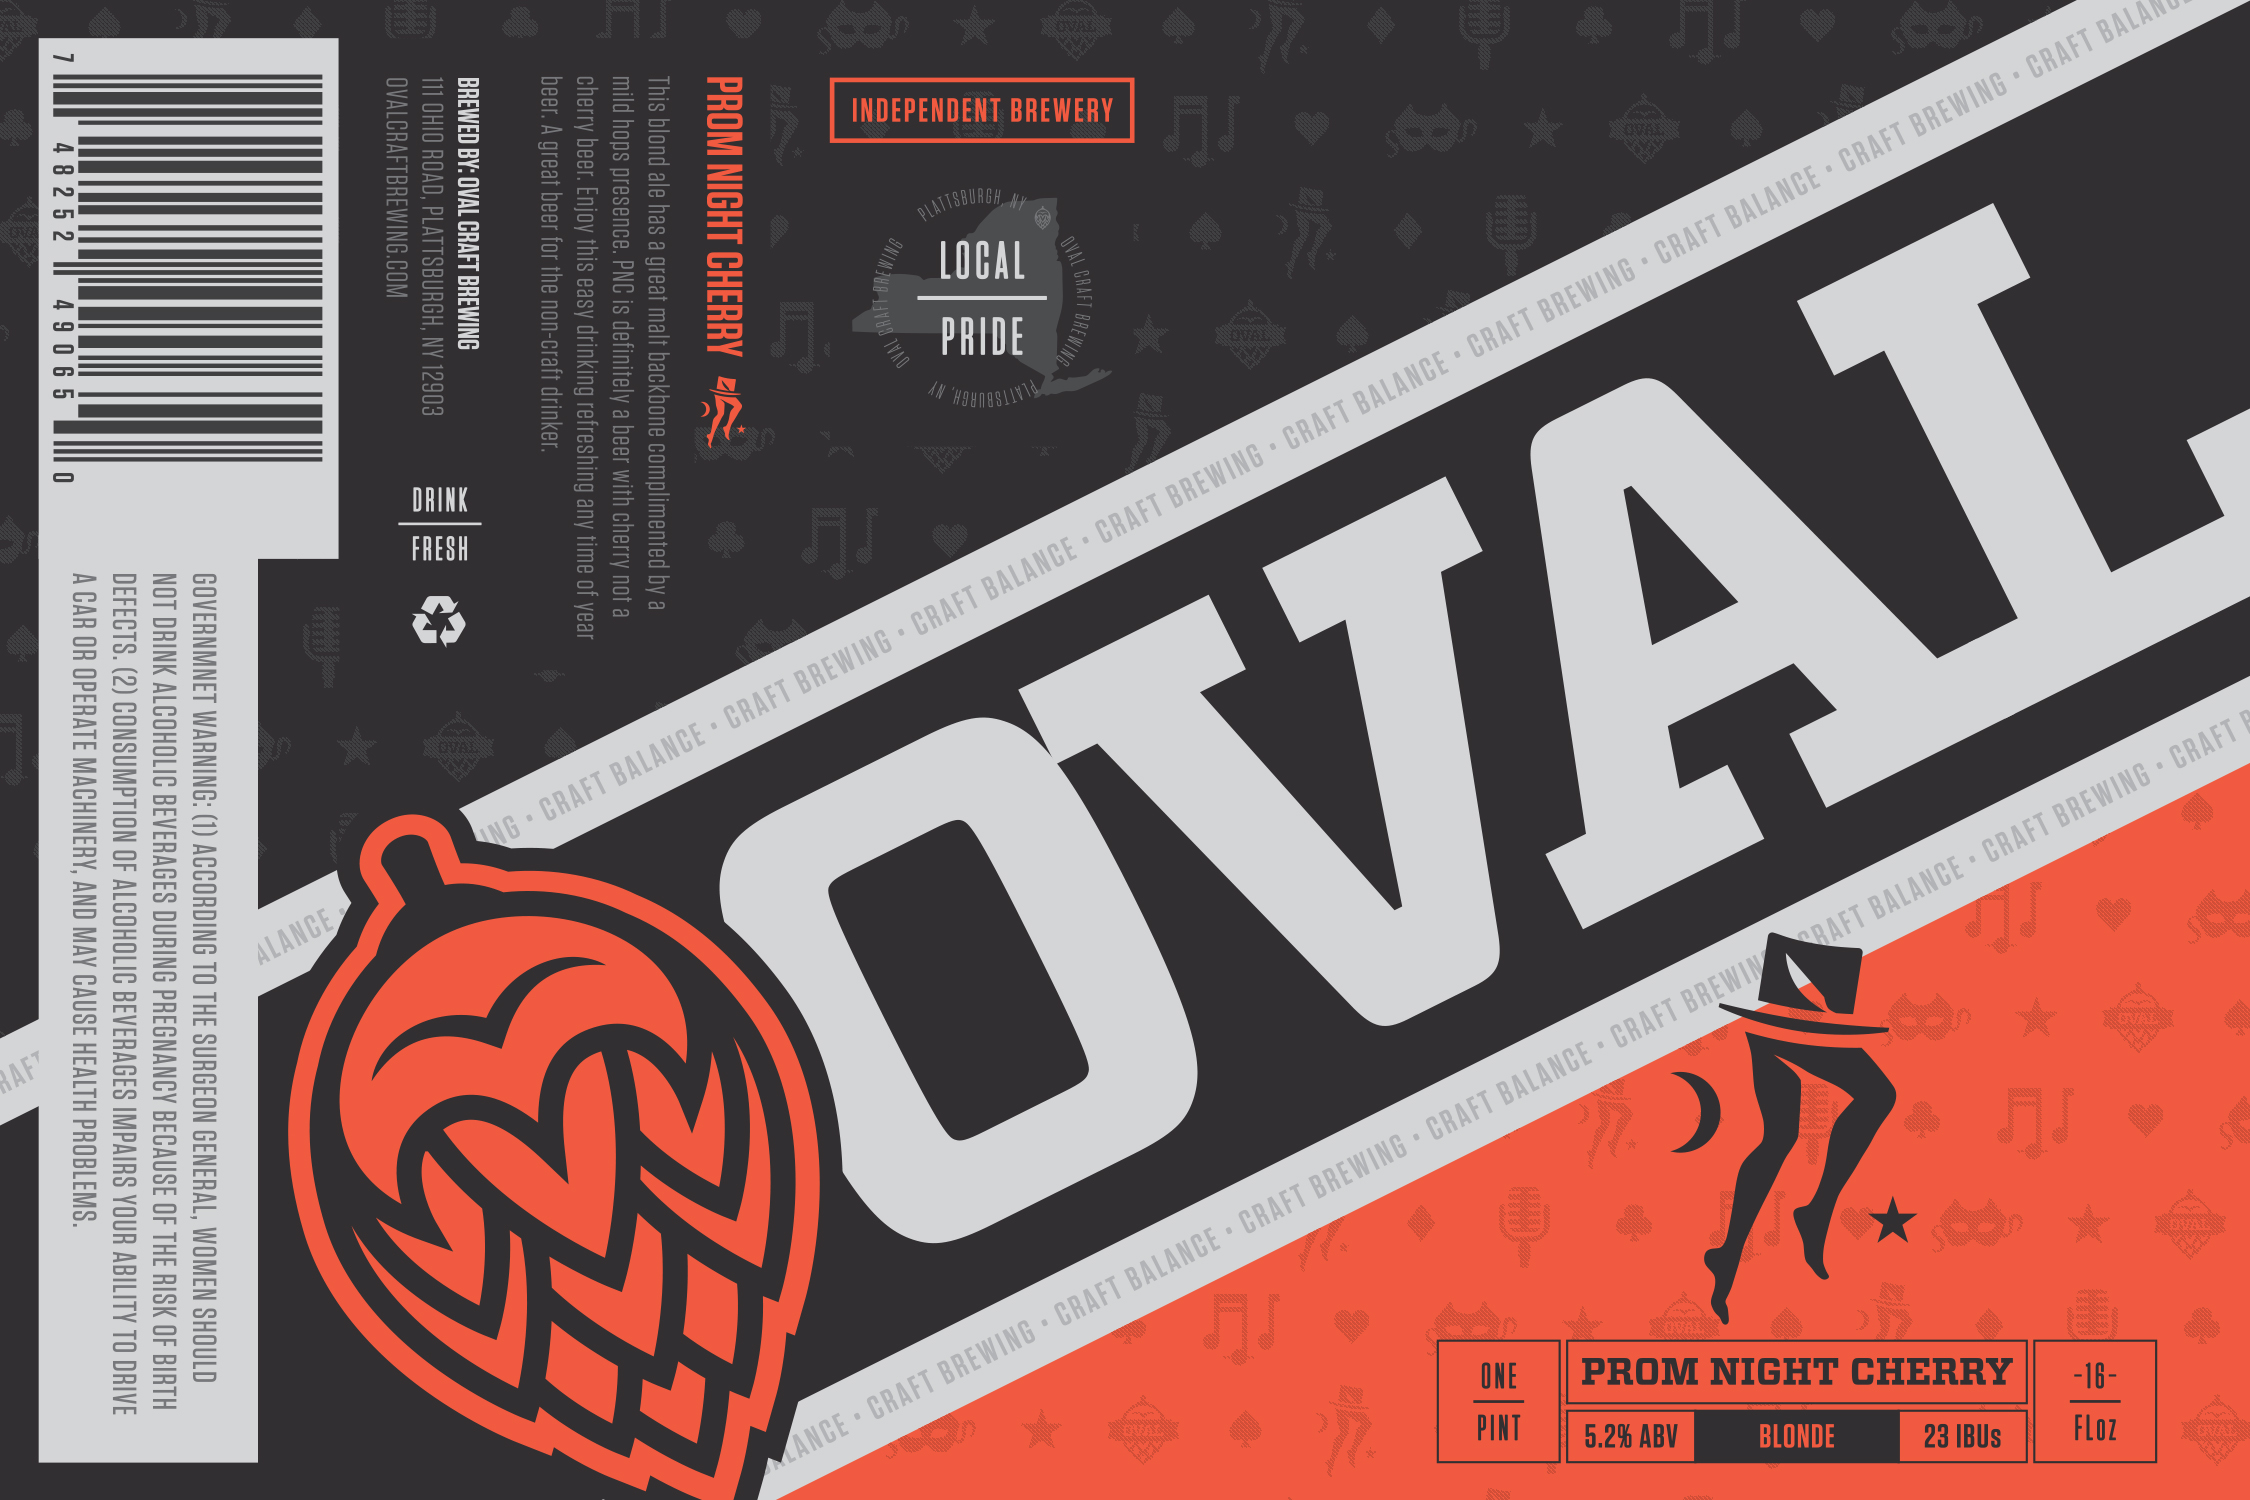 Oval Craft Brewing Tufton